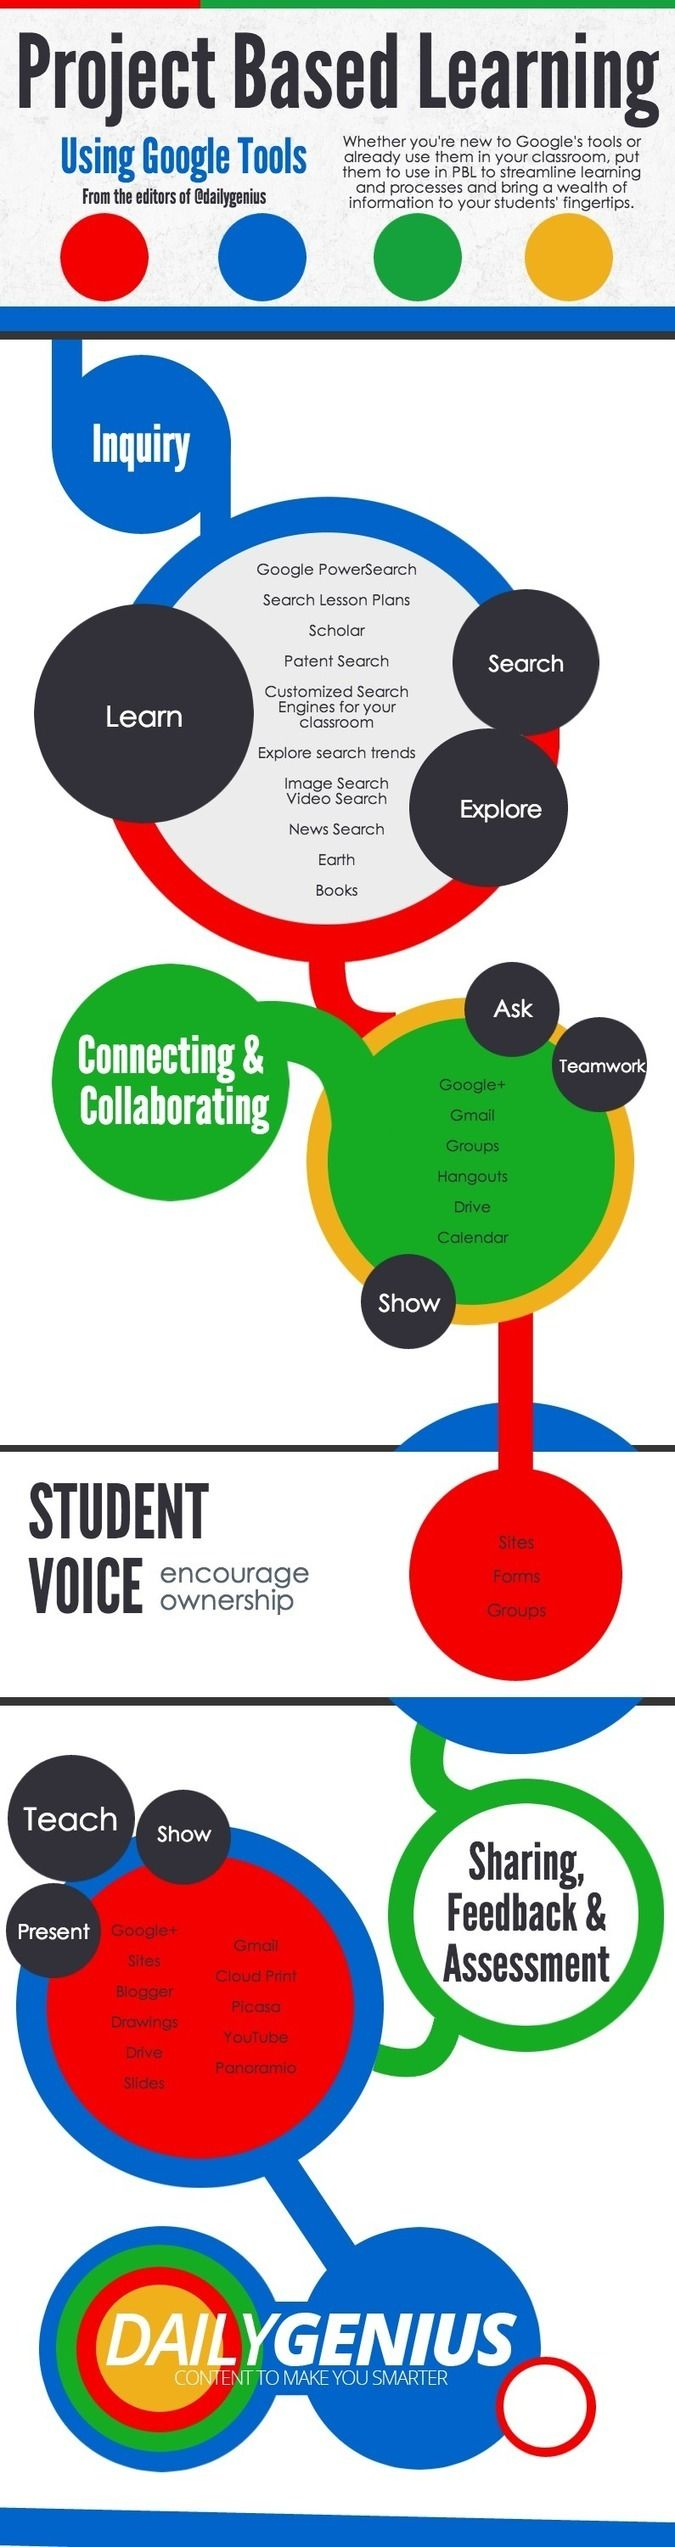 Using Google Tools in Project-Based Learning Infographic | PBL | eSkills